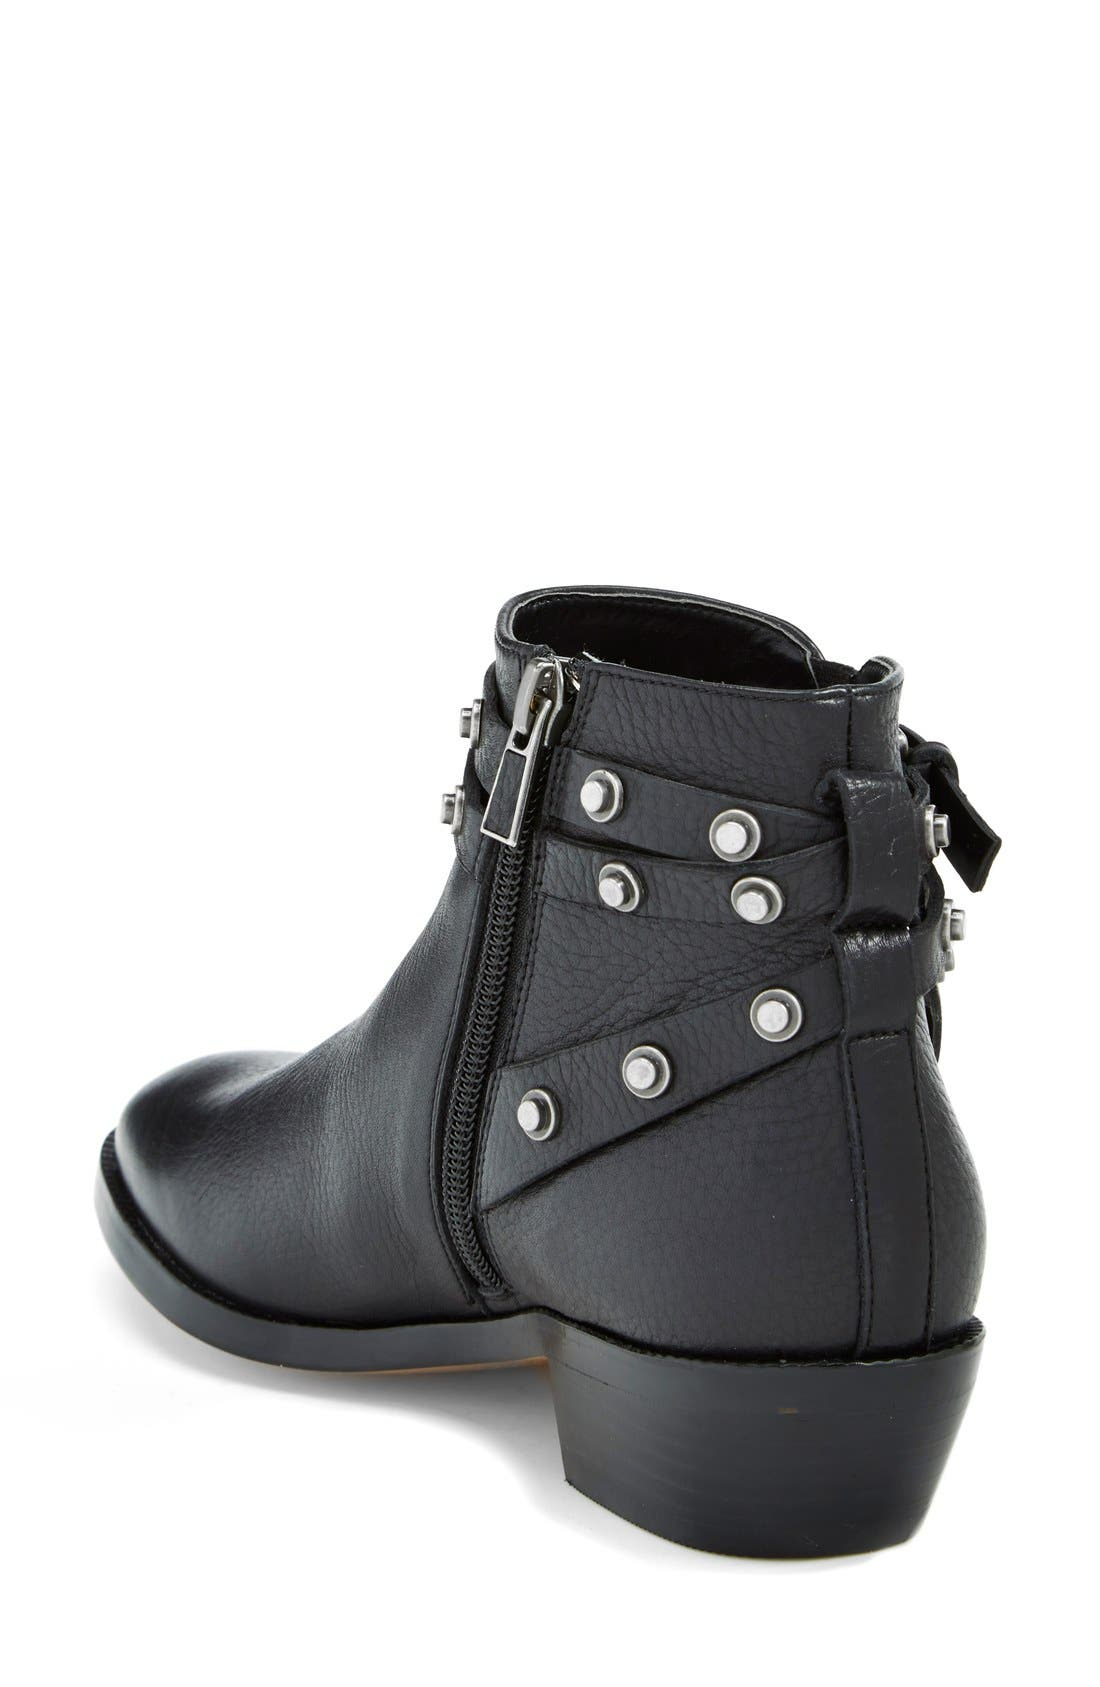 Alternate Image 2  - Halogen 'Lidia' Studded Leather Ankle Bootie (Women)